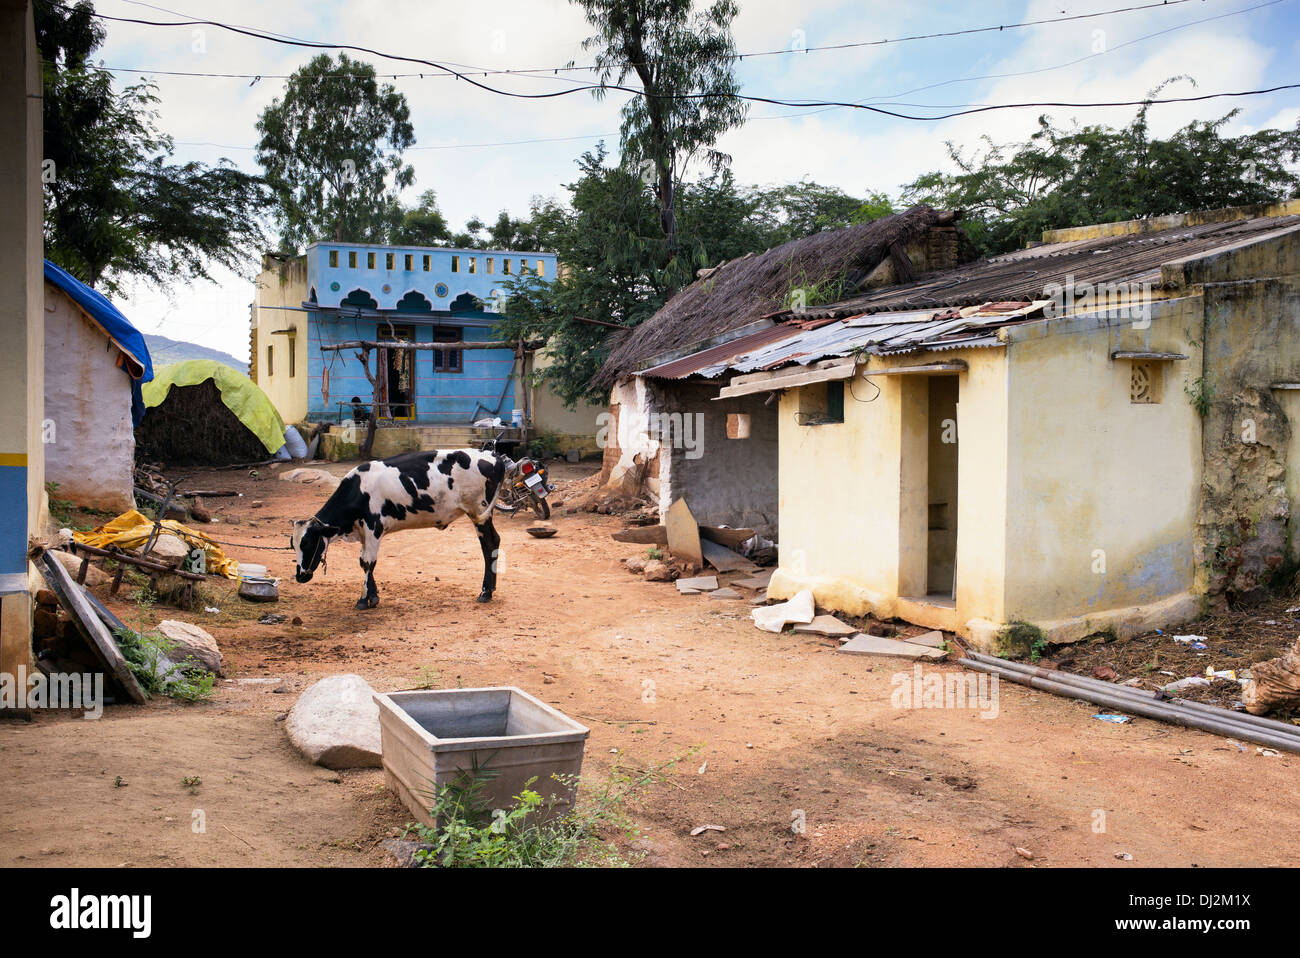 southern home mobile homes html with Stock Photo Rural South Indian Village Andhra Pradesh India 62754550 on Raw Video Fire In Santa Clarita Los Angeles 309105261 furthermore Stock Photo Traditional African Village Near Victoria Falls Zimbabwe Africa Aerial 57807560 likewise 1979 Robinhood Sportsman Rv Motorhome Dodge F40 24565721 in addition 07hours besides 29iht Remumbai29.